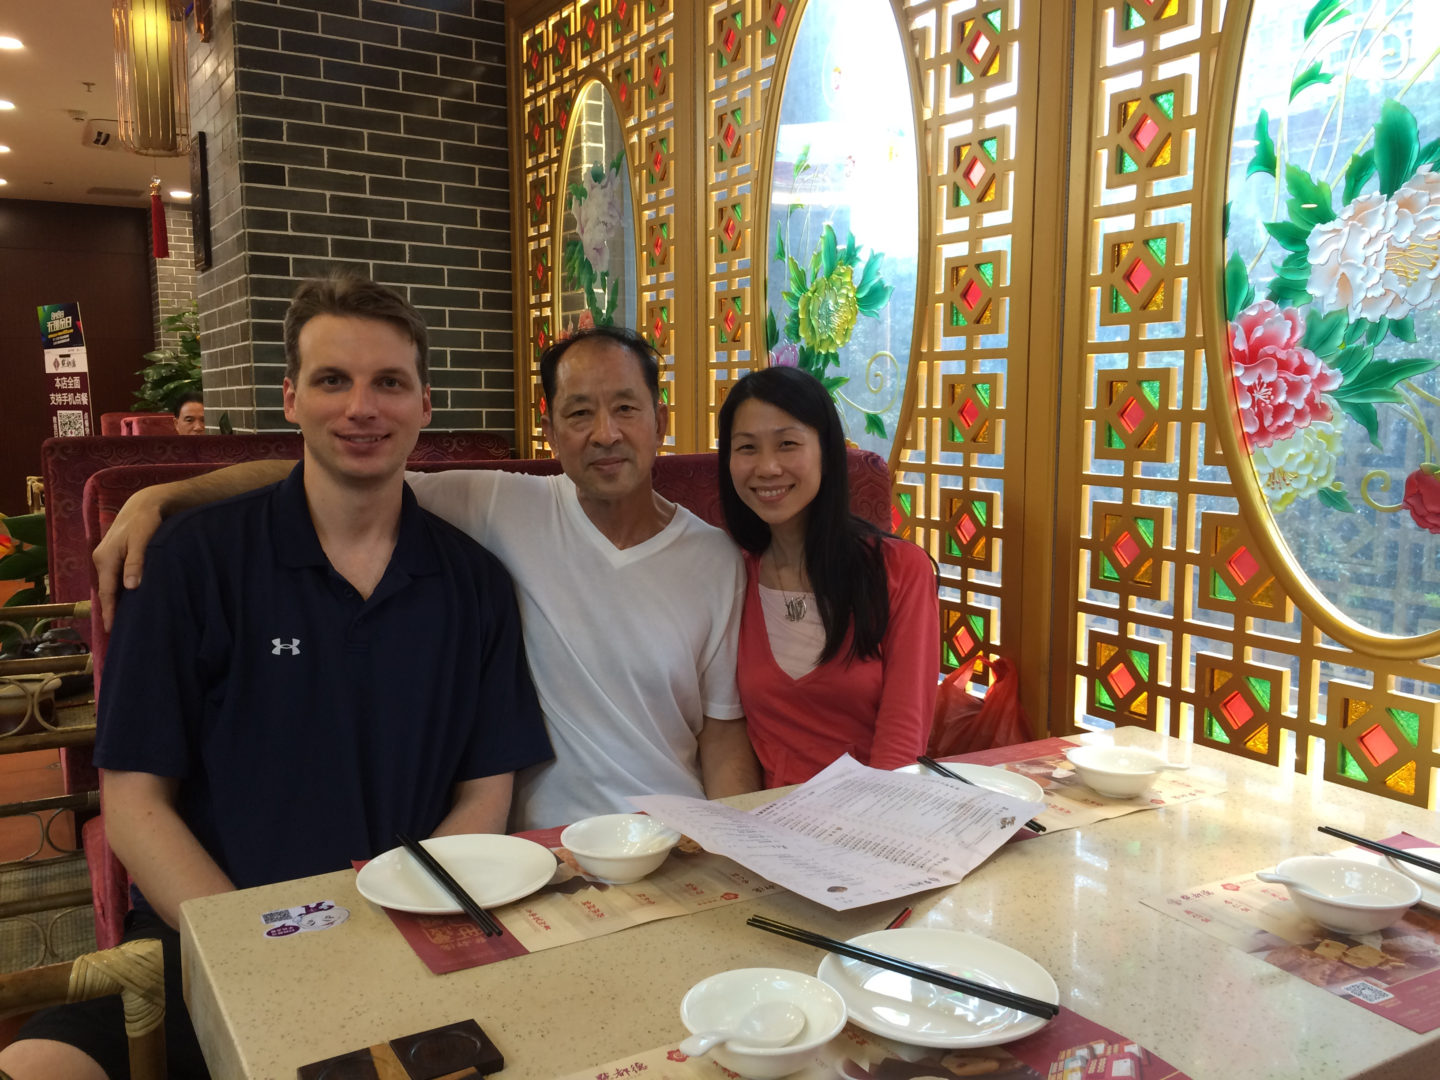 Danielle Wang (R) with her father, Wang Zhiwen (C), and her husband at a restaurant in China, summer of 2016. (Courtesy of Danielle Wang)